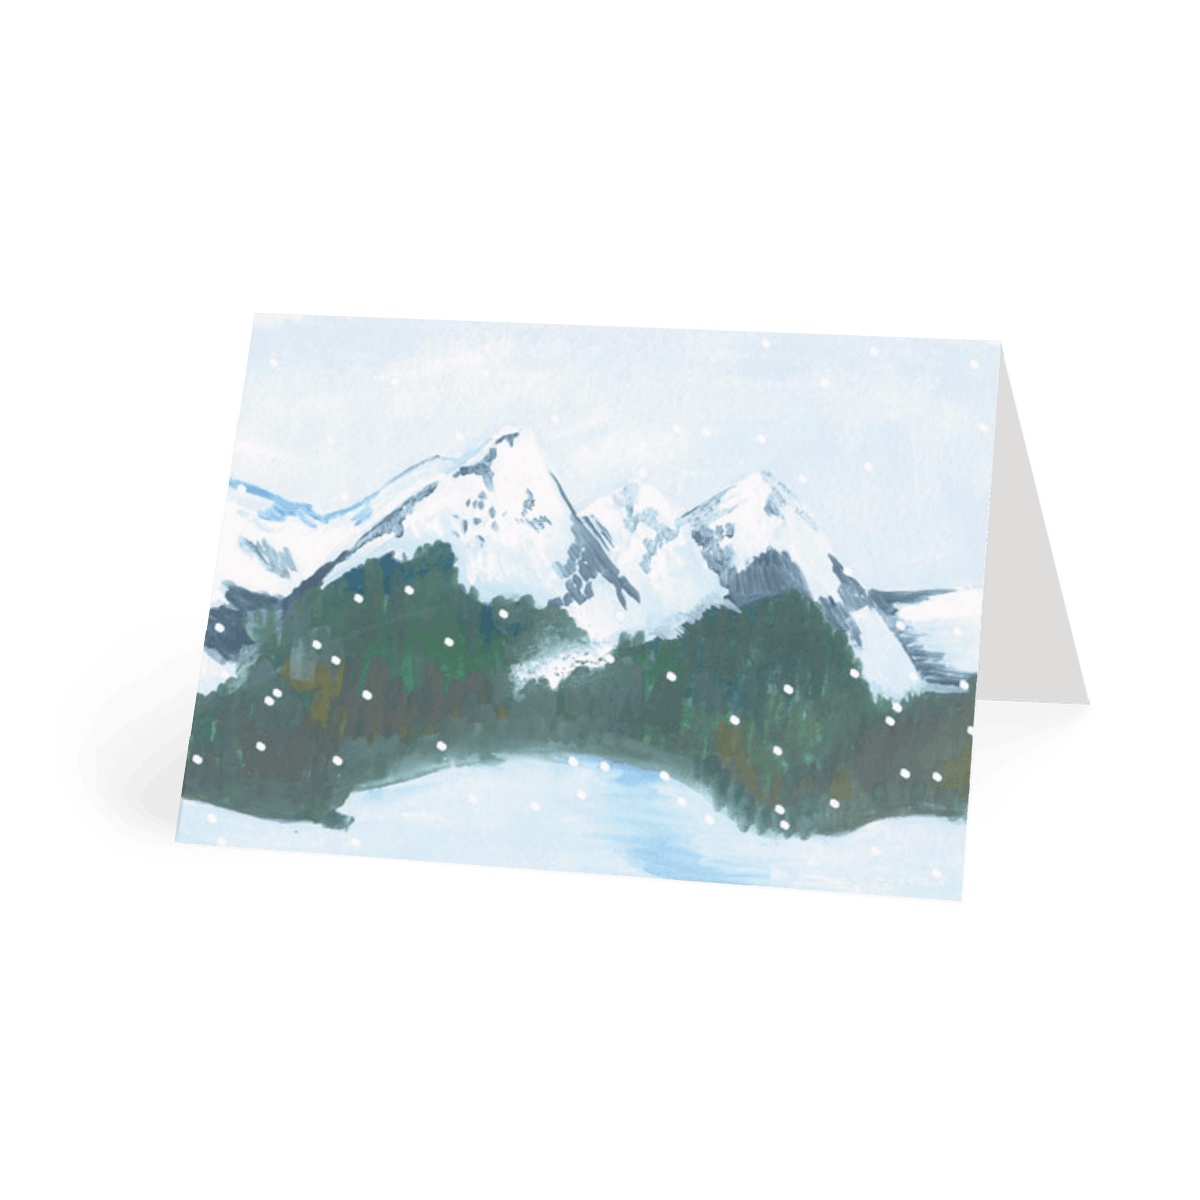 Https%3a%2f%2fwww.papier.com%2fproduct image%2f8453%2f14%2fsnowy mountains 2098 front 1476094598.png?ixlib=rb 1.1